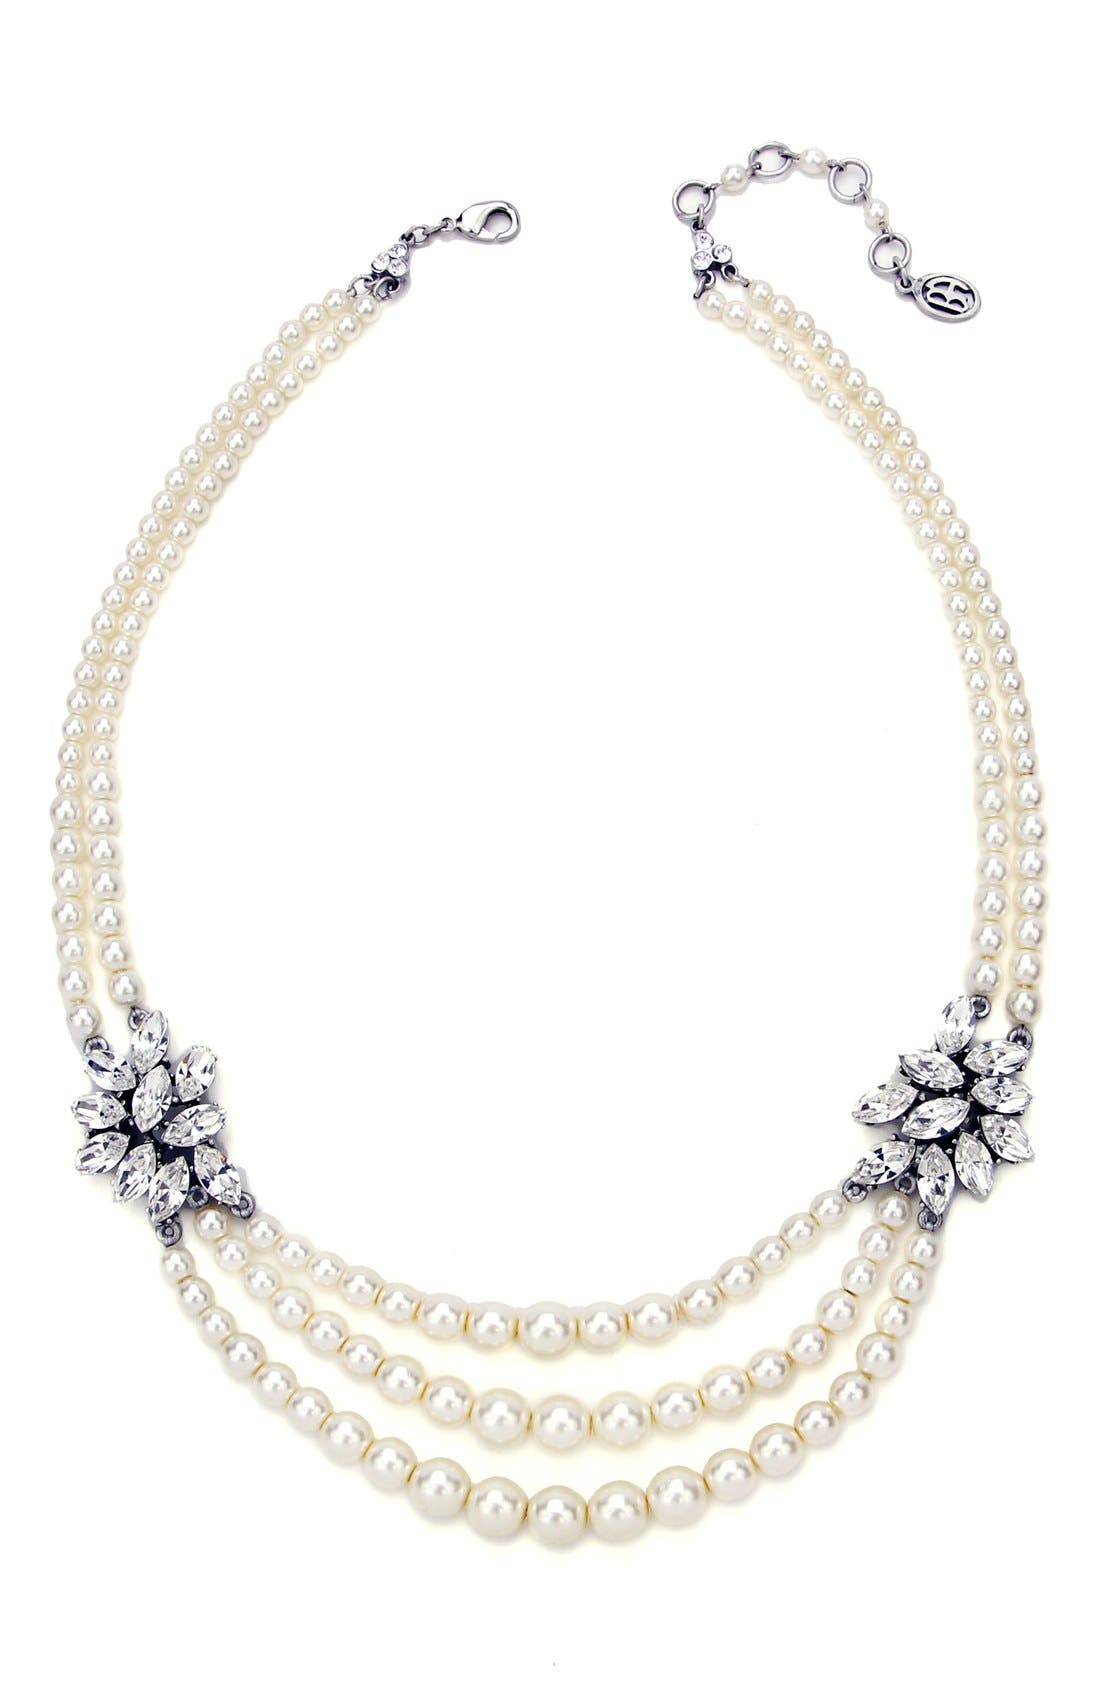 Main Image - BEN-AMUN Faux Pearl & Crystal Multistrand Necklace